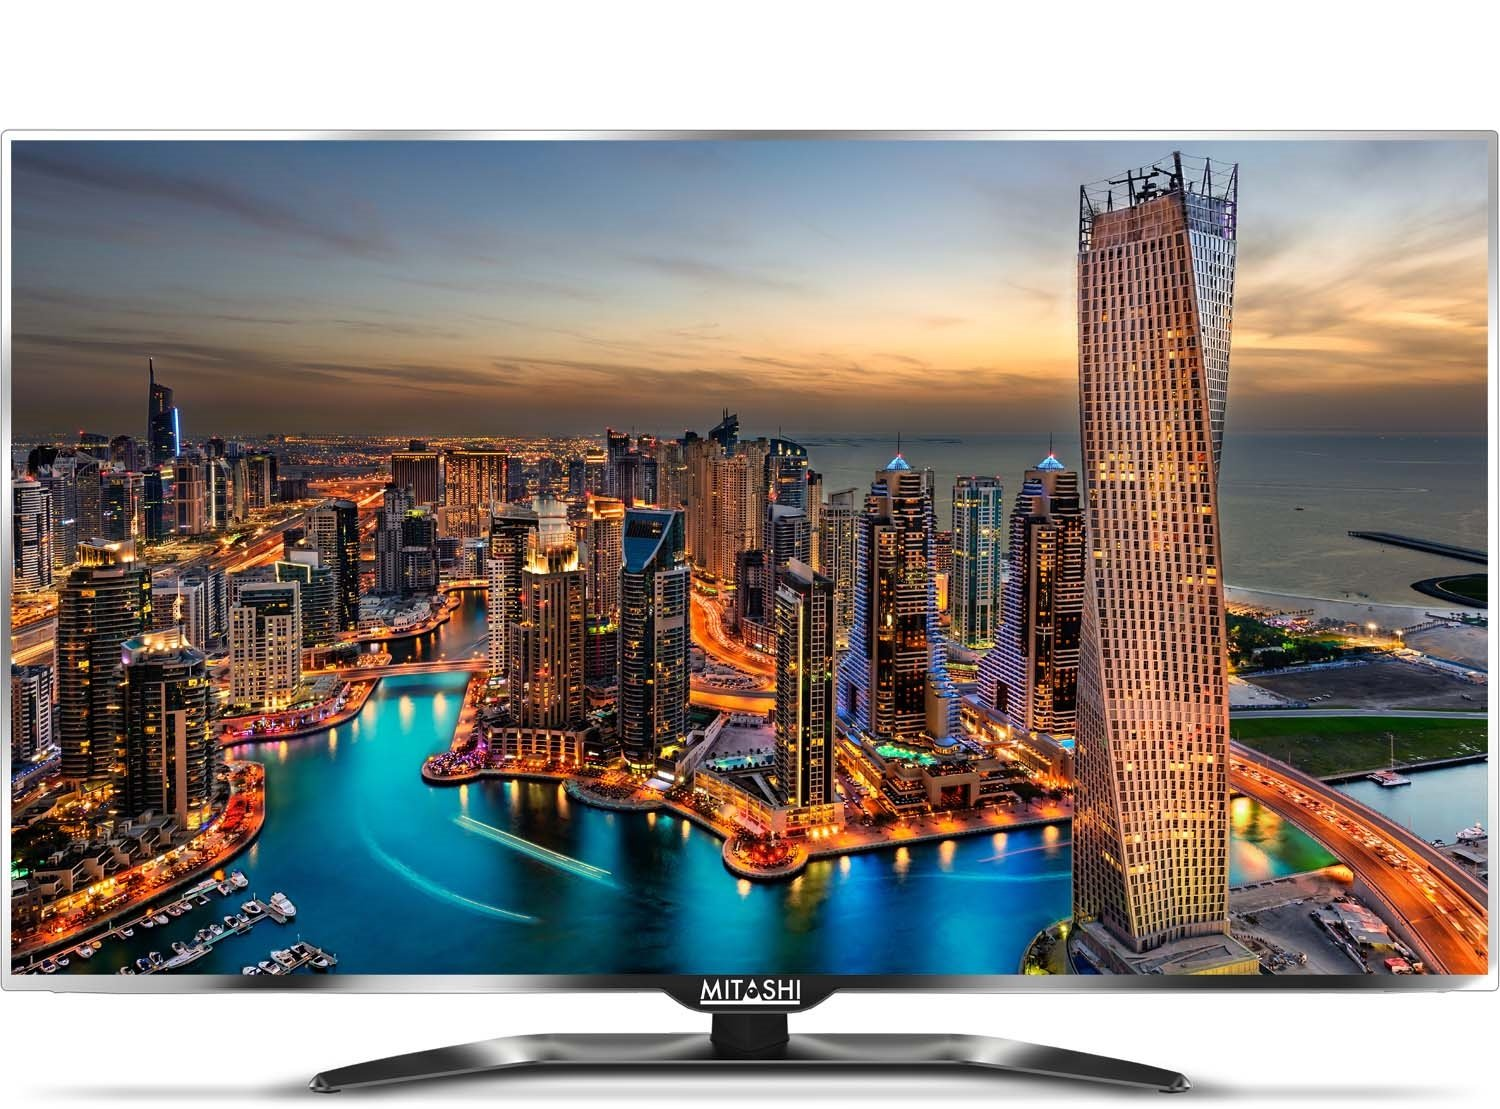 50% Off Or More Off On Televisions By Amazon | Mitashi MiE050v014K 127cm (50 inches) 4K Ultra HD LED TV (Silver/Black) with 3 years warranty @ Rs.51,436